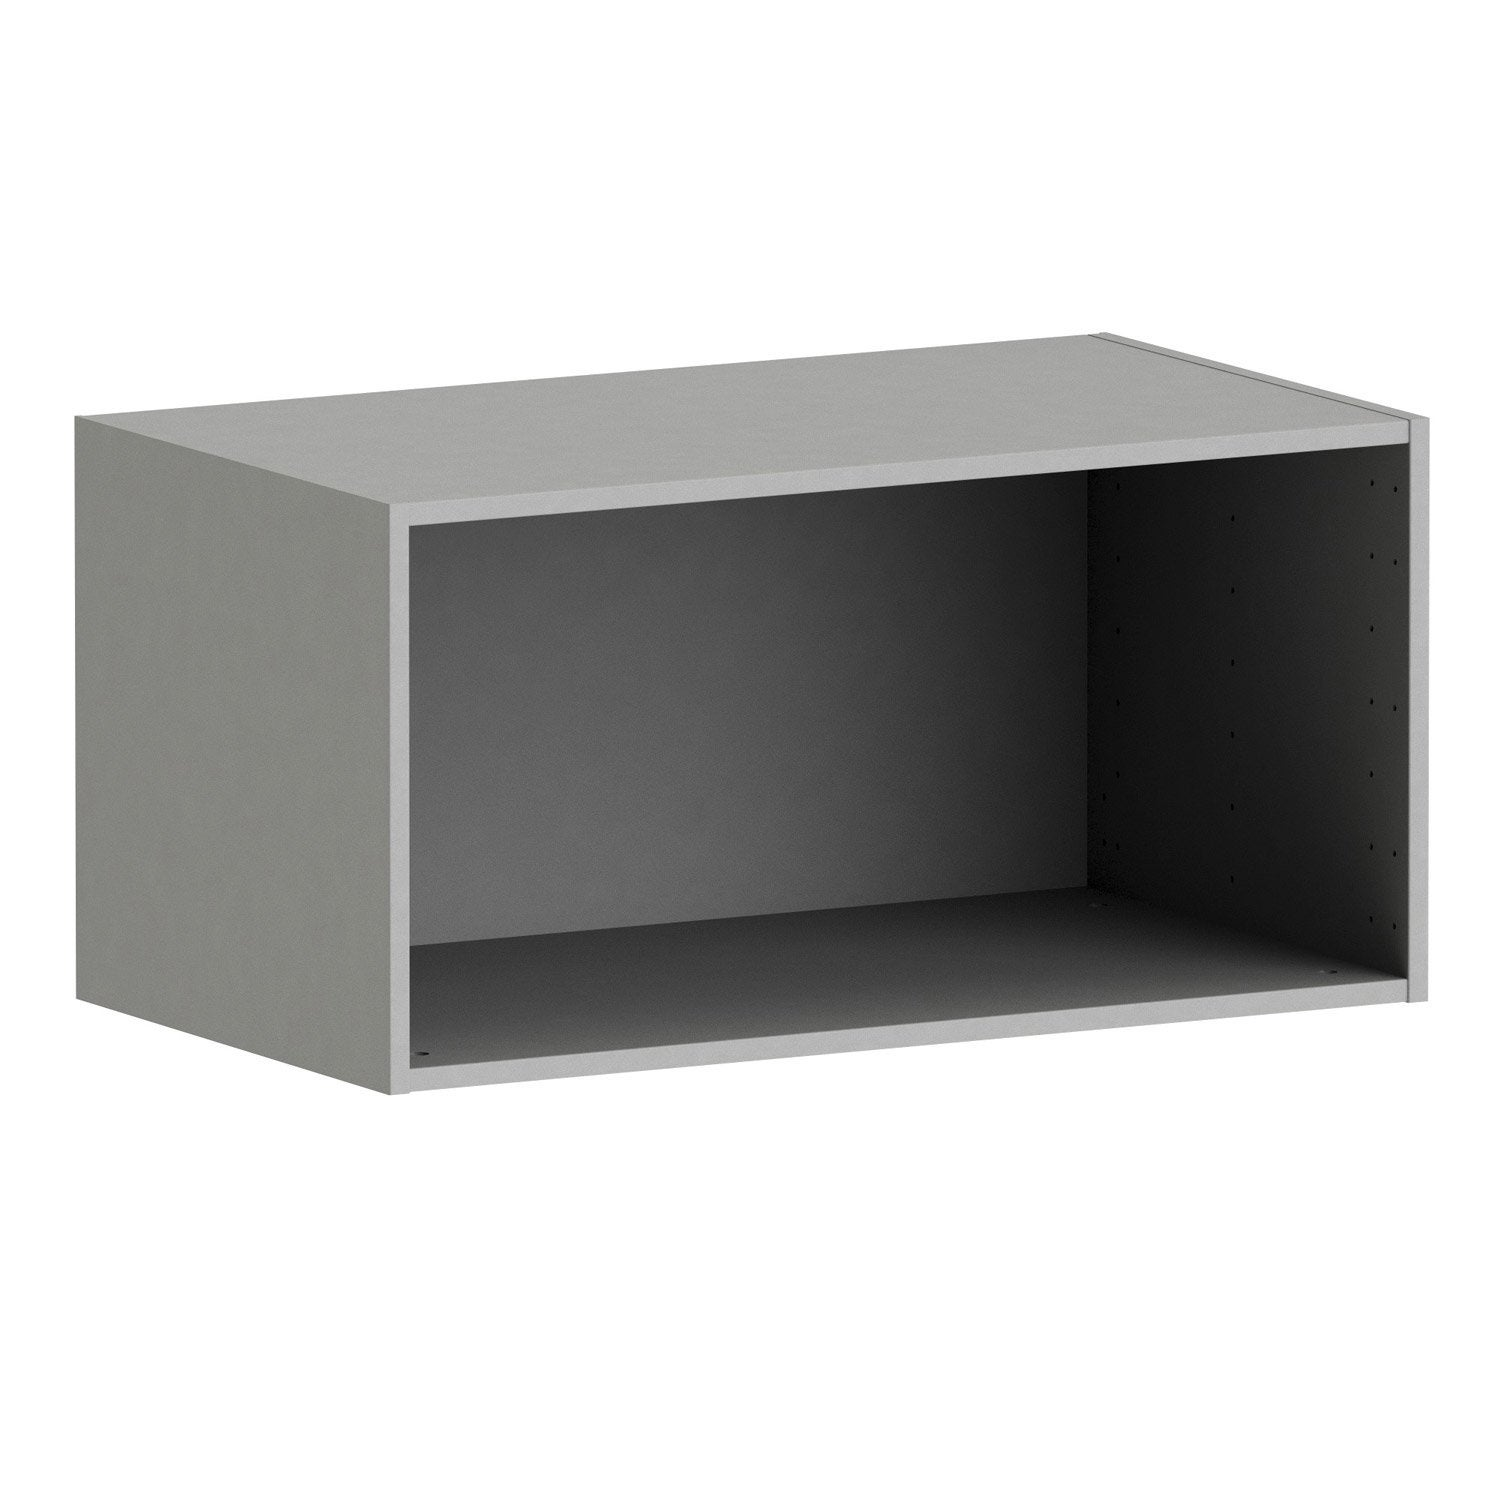 Caisson spaceo home 40 x 80 x 45 cm anthracite leroy merlin - Caisson dressing profondeur 45 ...